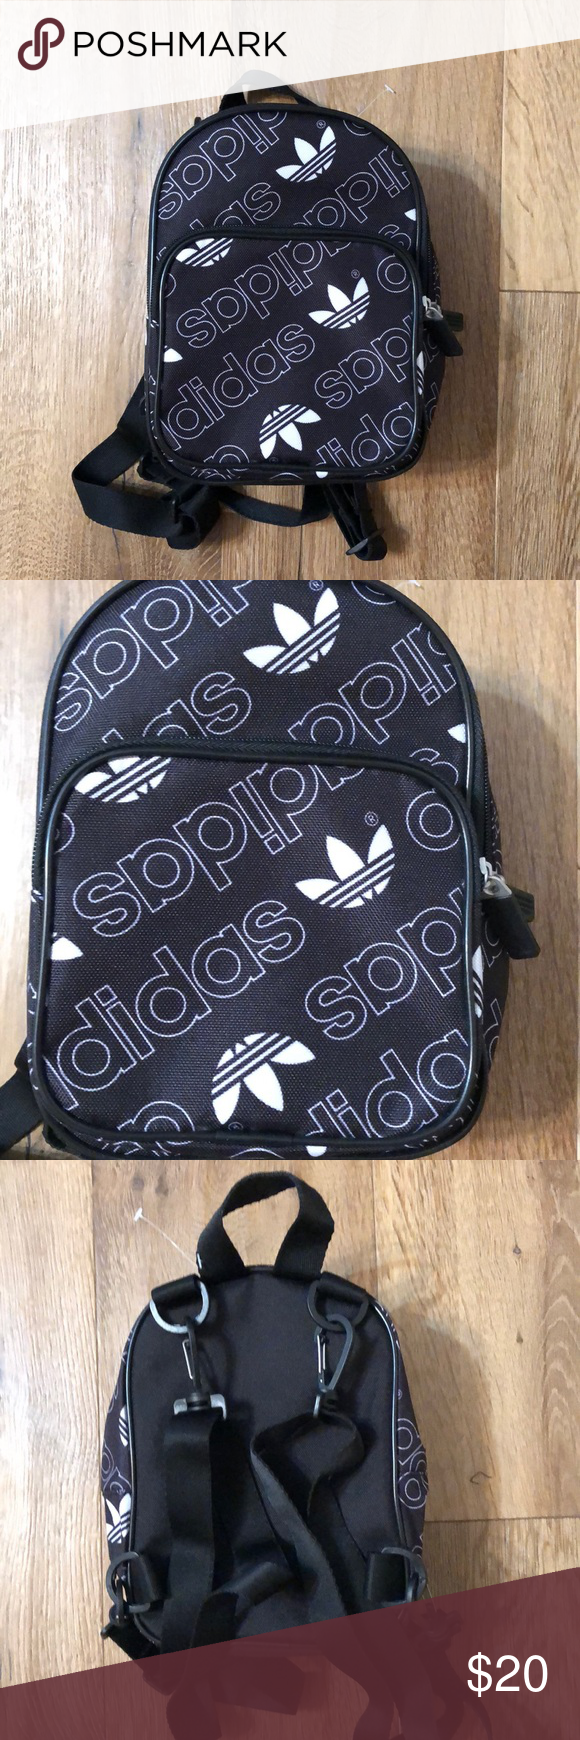 4a4d79b9d56 adidas Originals BP CL AC XS GR backpack Brand new, never used without tags.